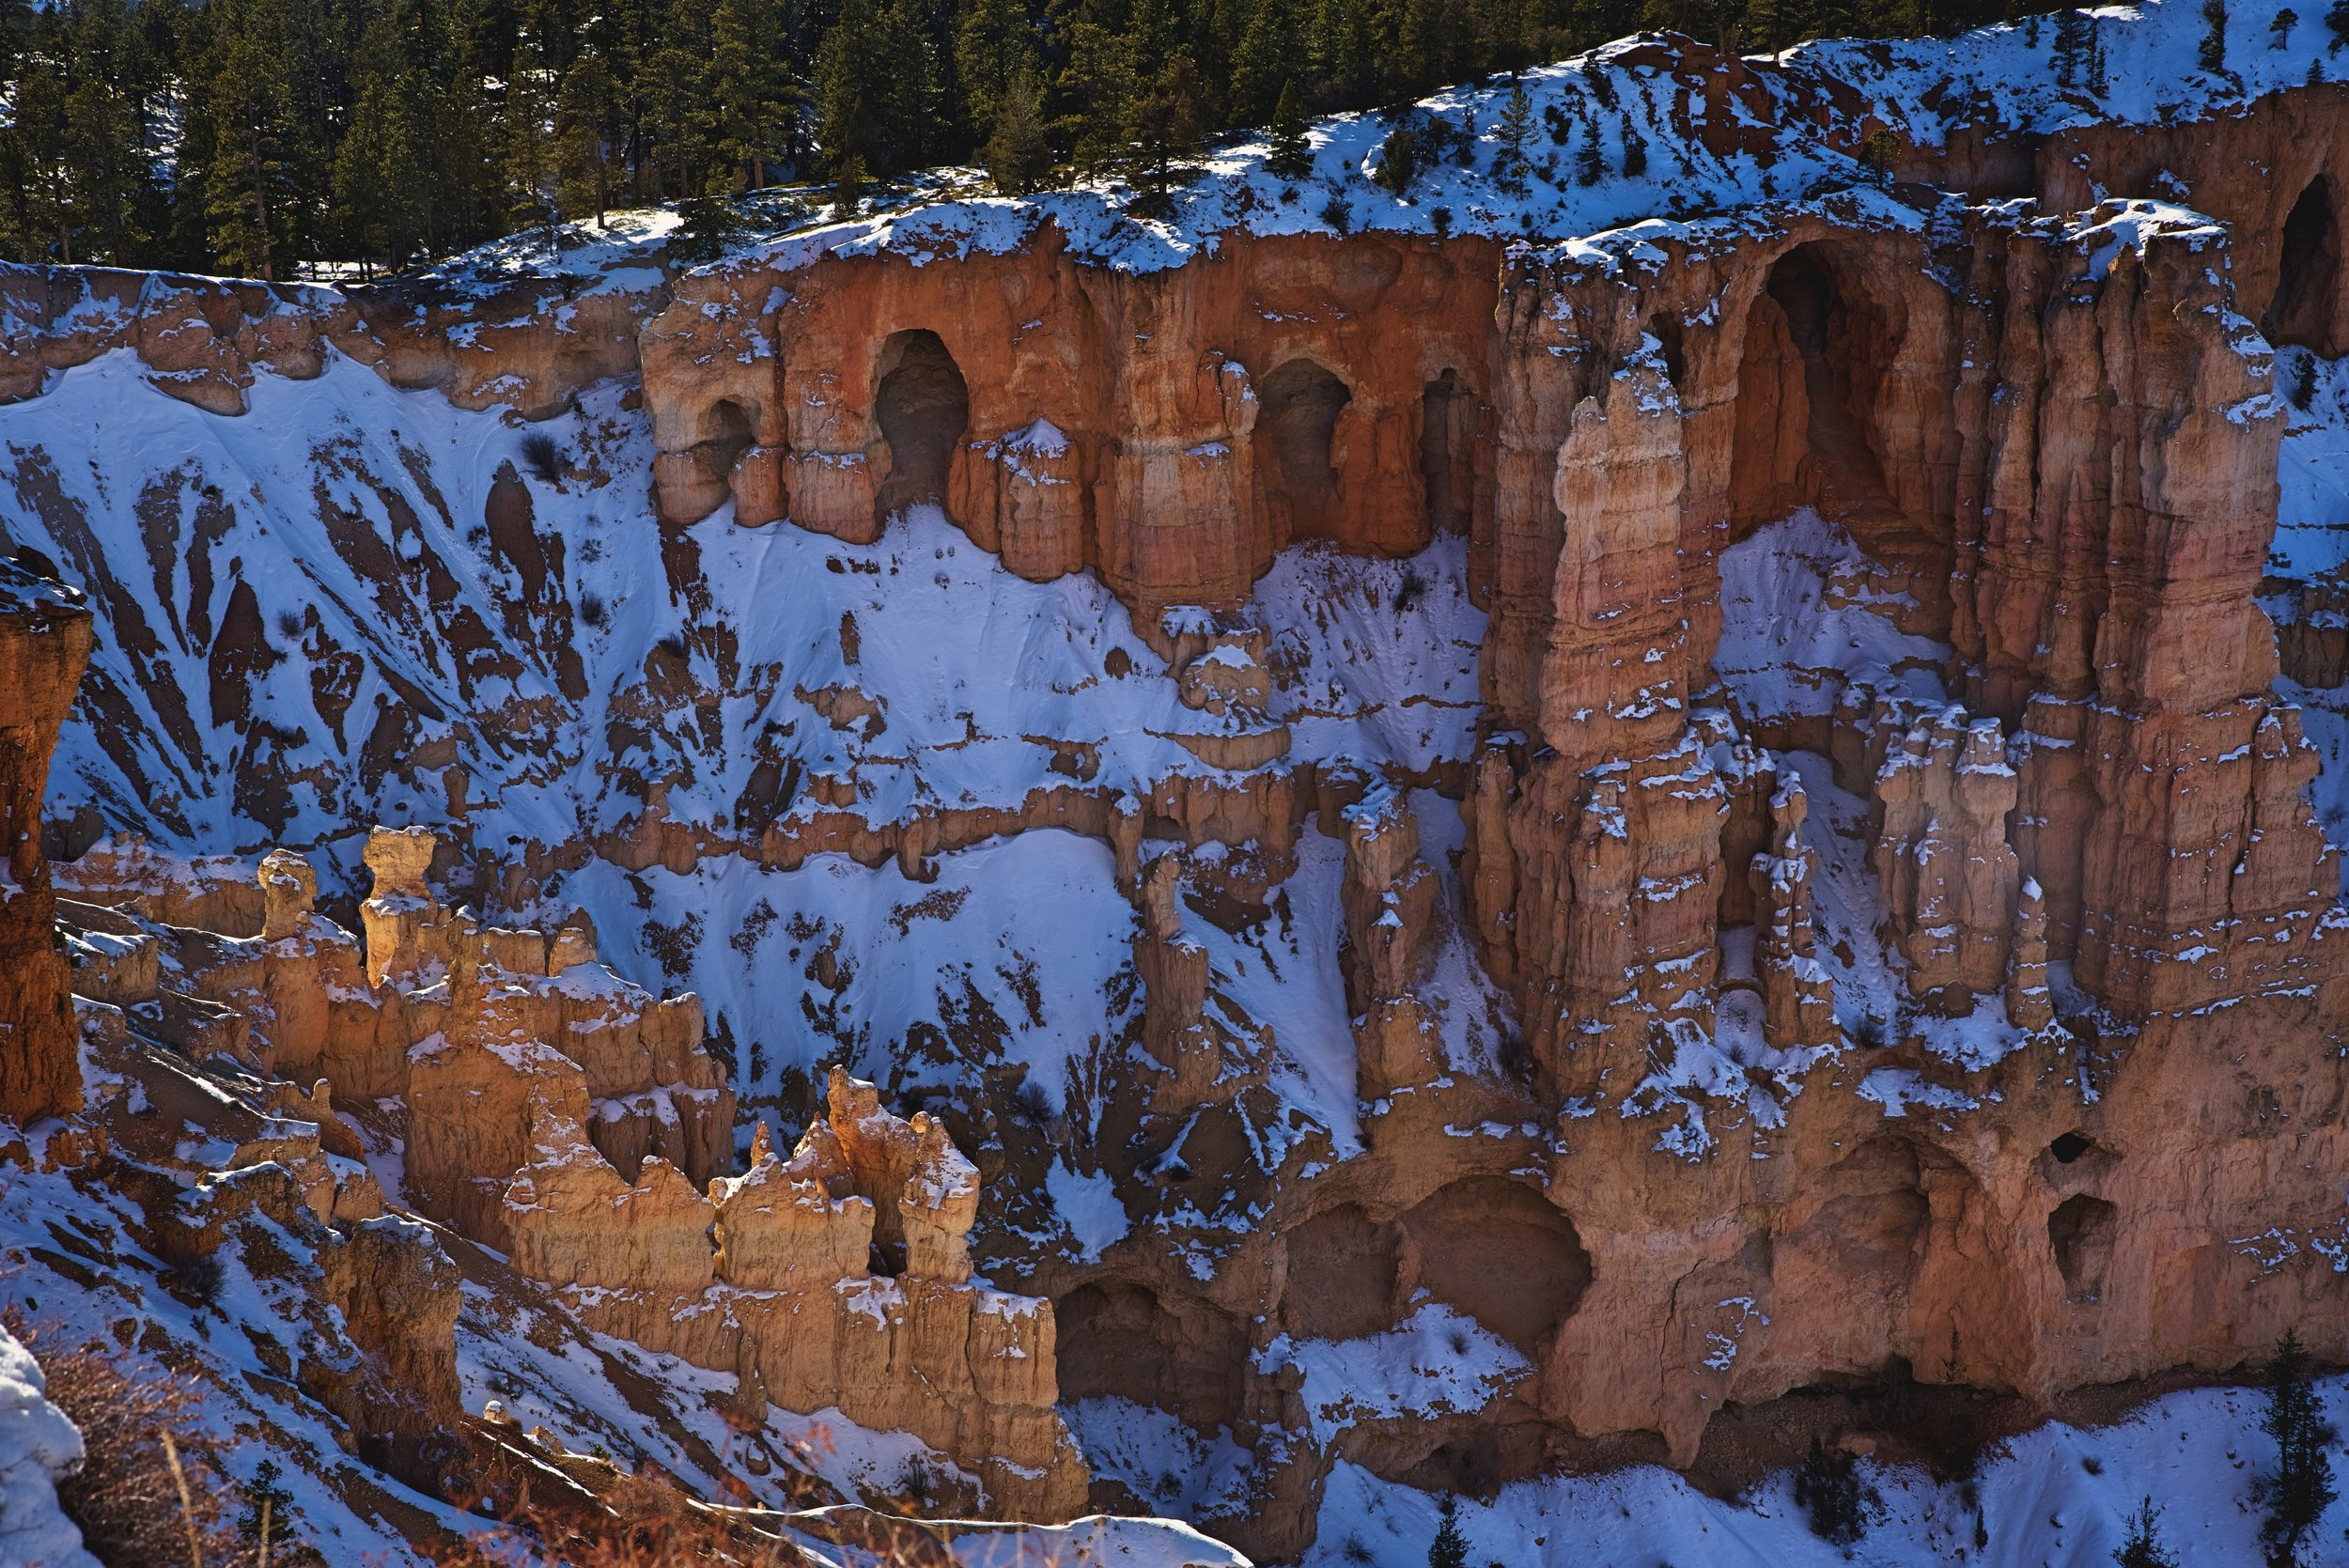 The Grottos at Bryce Point are a series of natural arches along one of the cliffs.